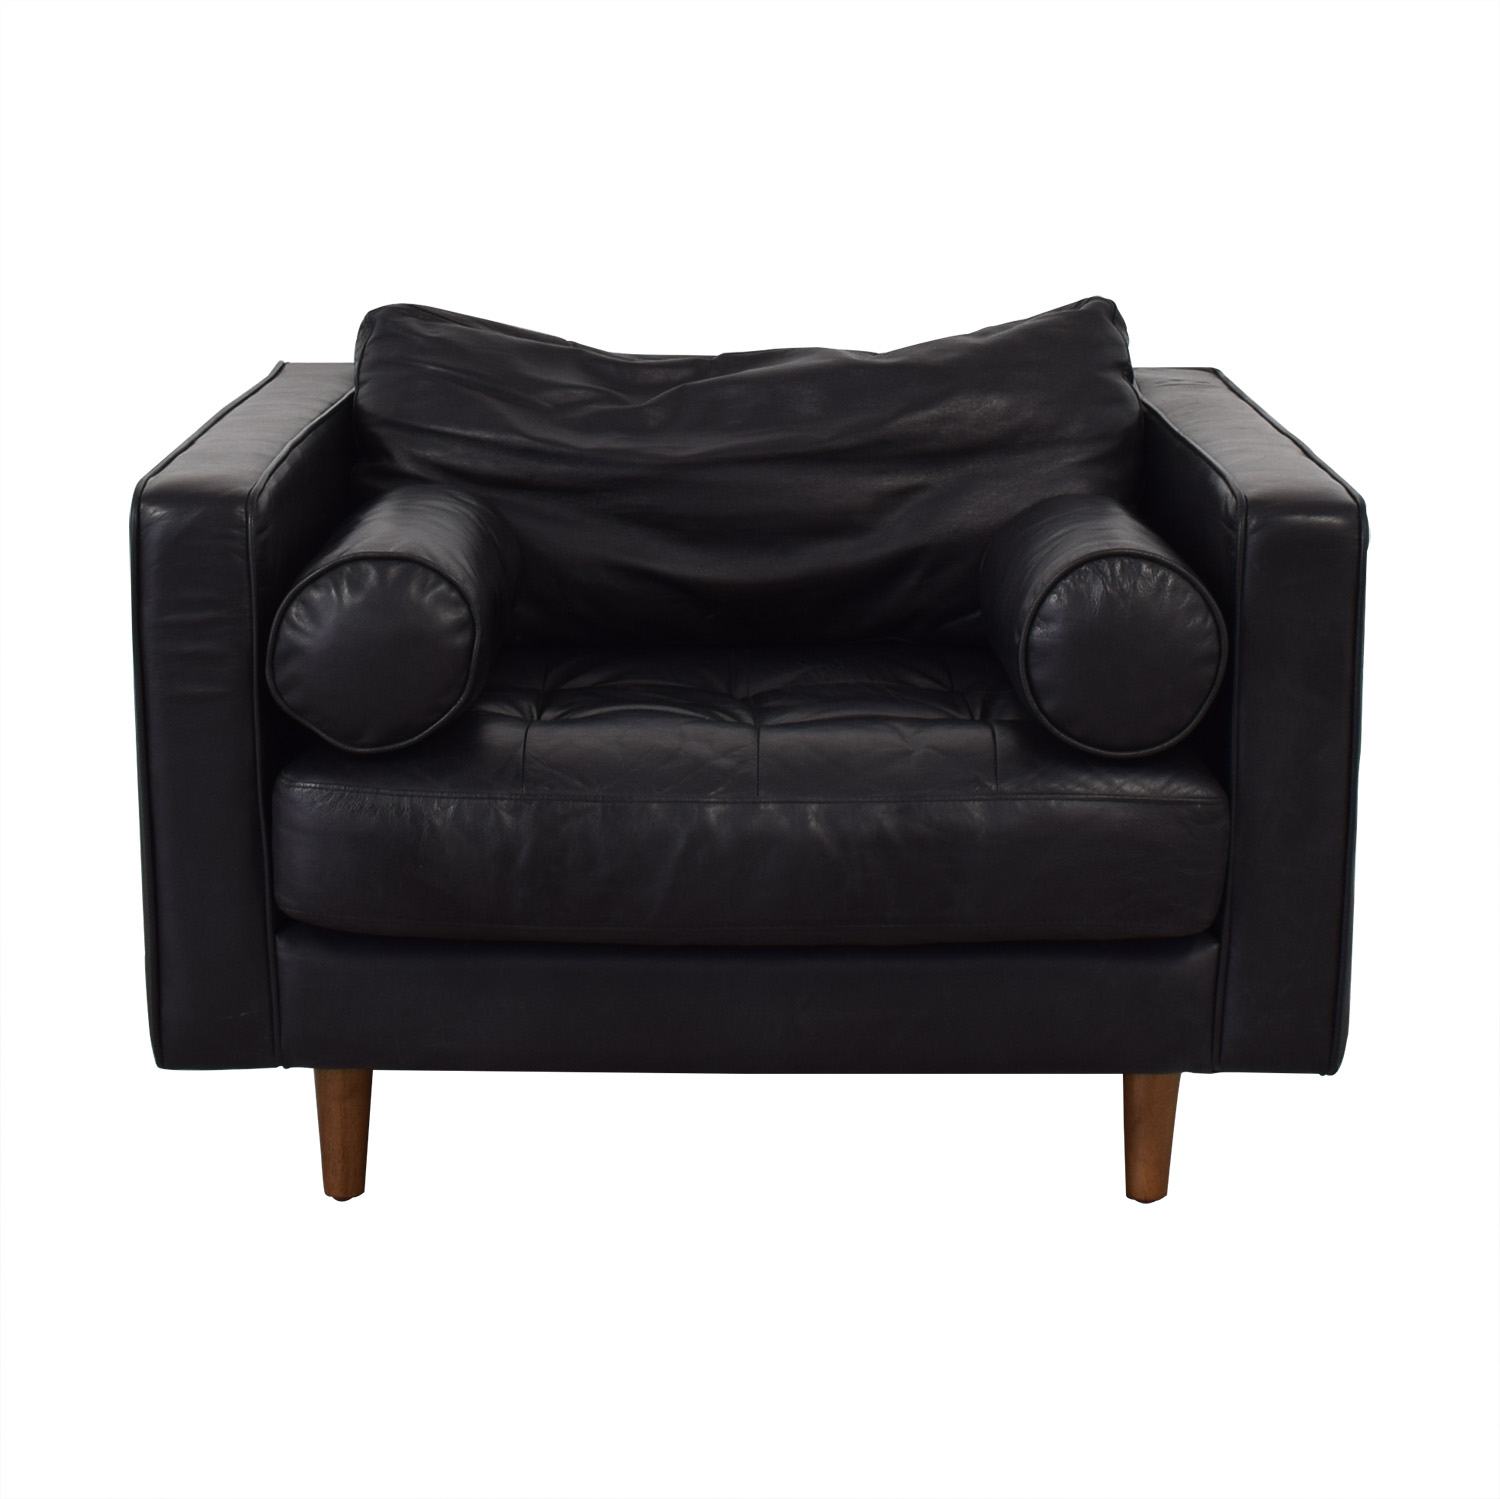 Article Article Sven Oxford Black Chair on sale